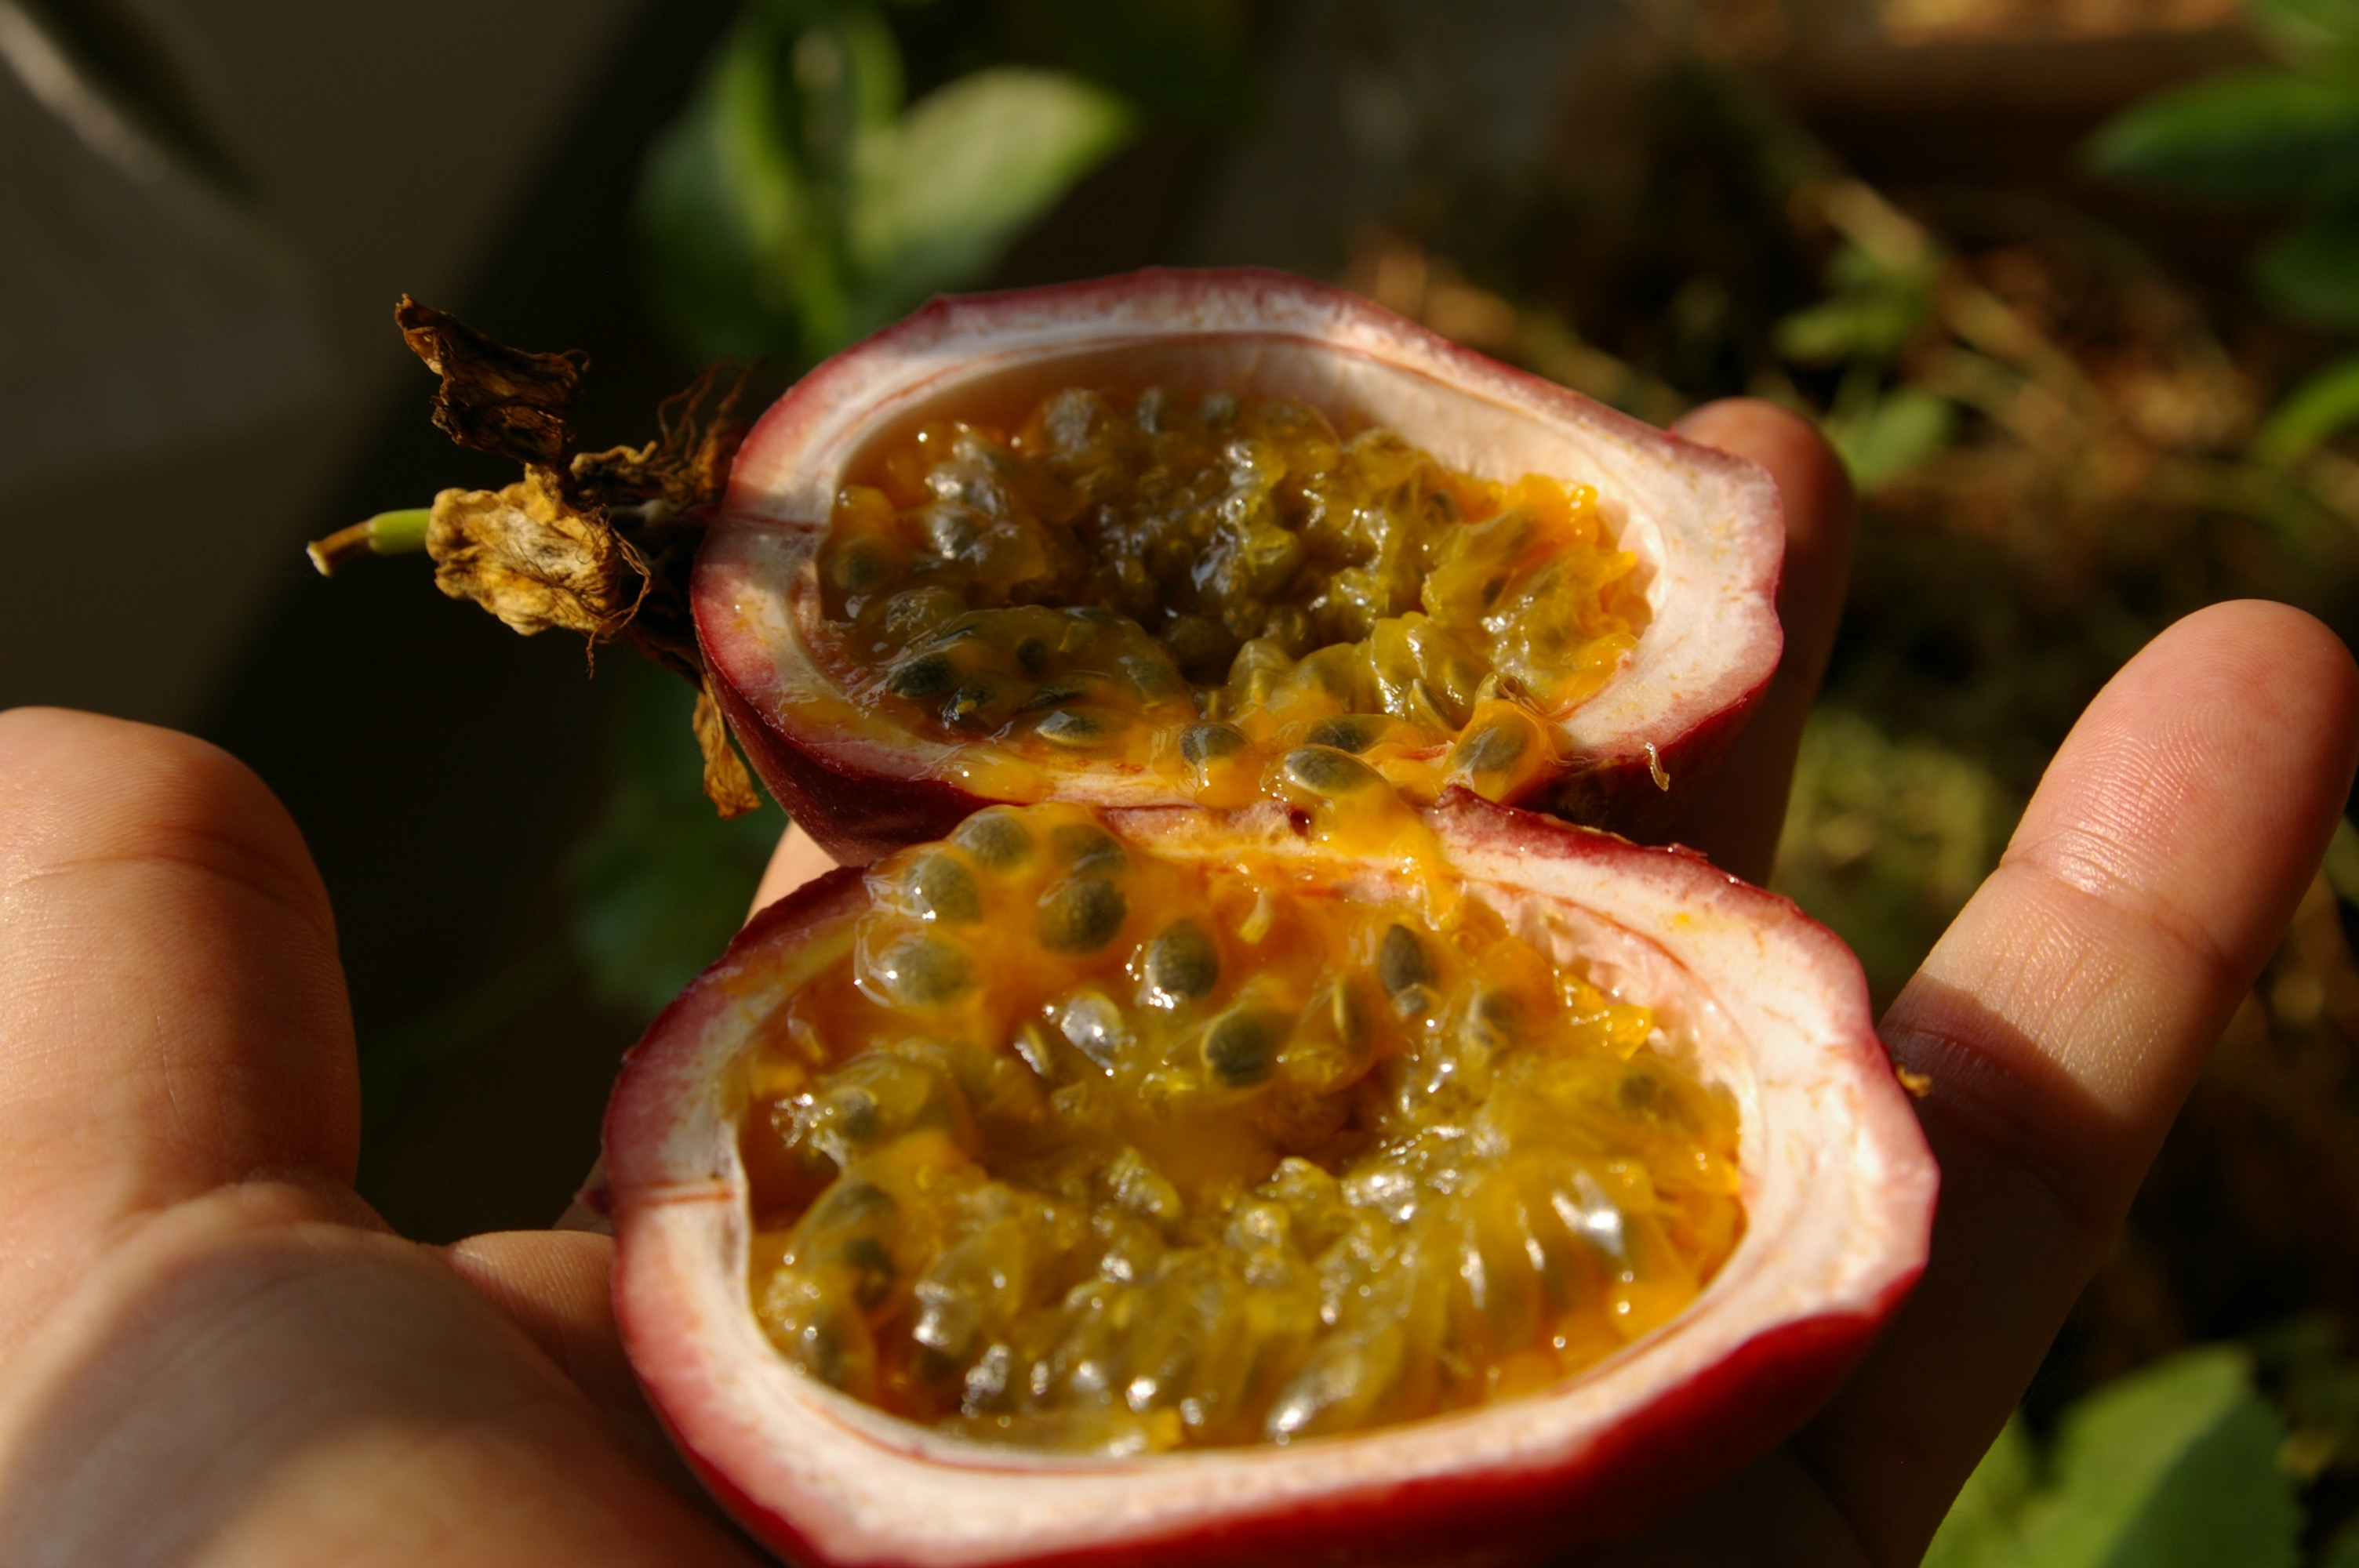 I forgot to mention that my other hobby is gardening. This is a passion fruit that I grew on my veranda.